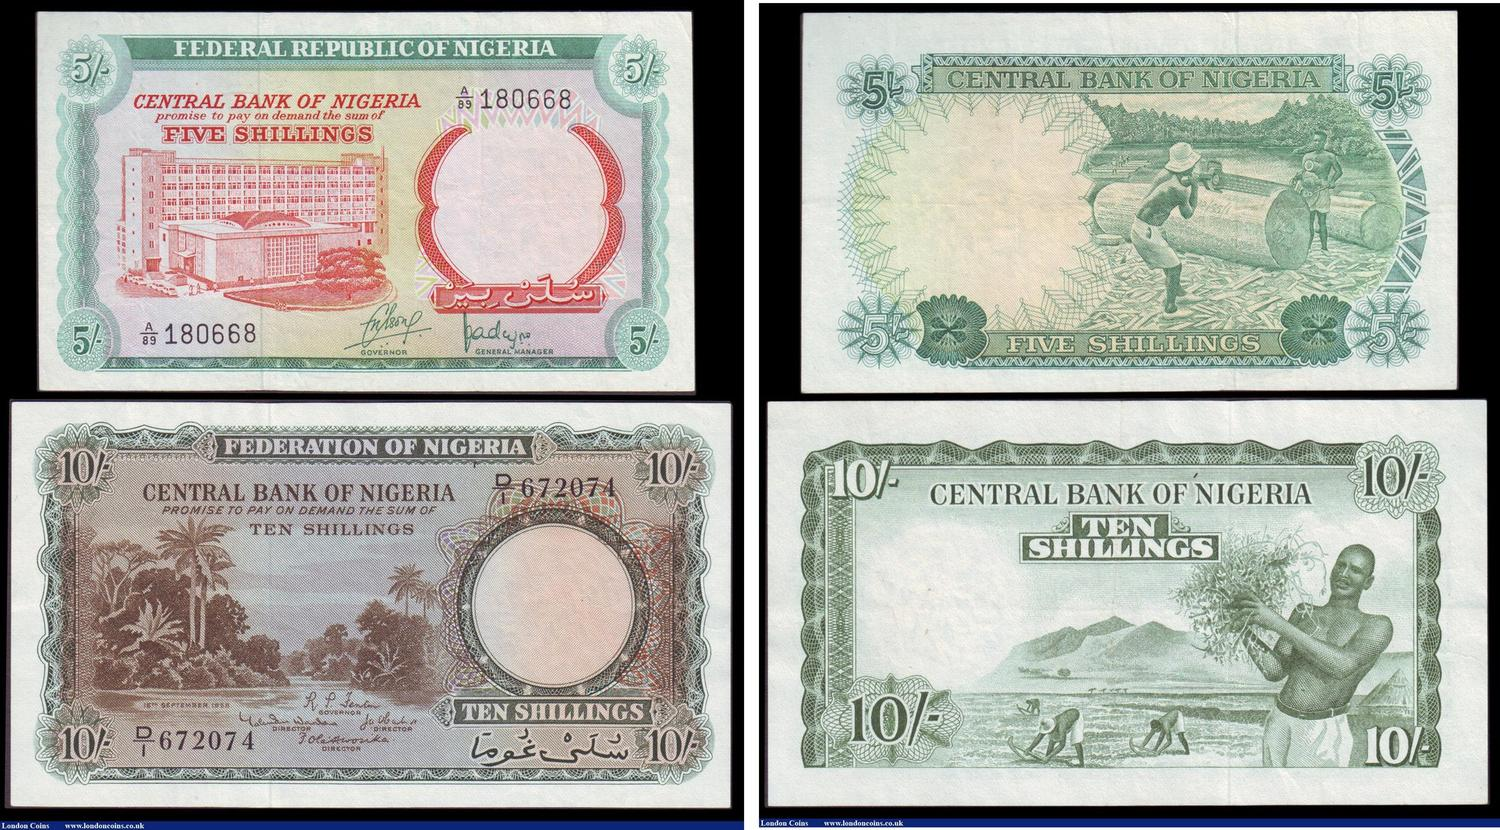 Numisbids London Coins Ltd Auction 152 5 6 March 2016 World Cash Pb 20000 Nigeria 2 10 Shillings Dated 15th September 1958 Series D 1 672074 Pick3a Vf To Gvf Issued 1968